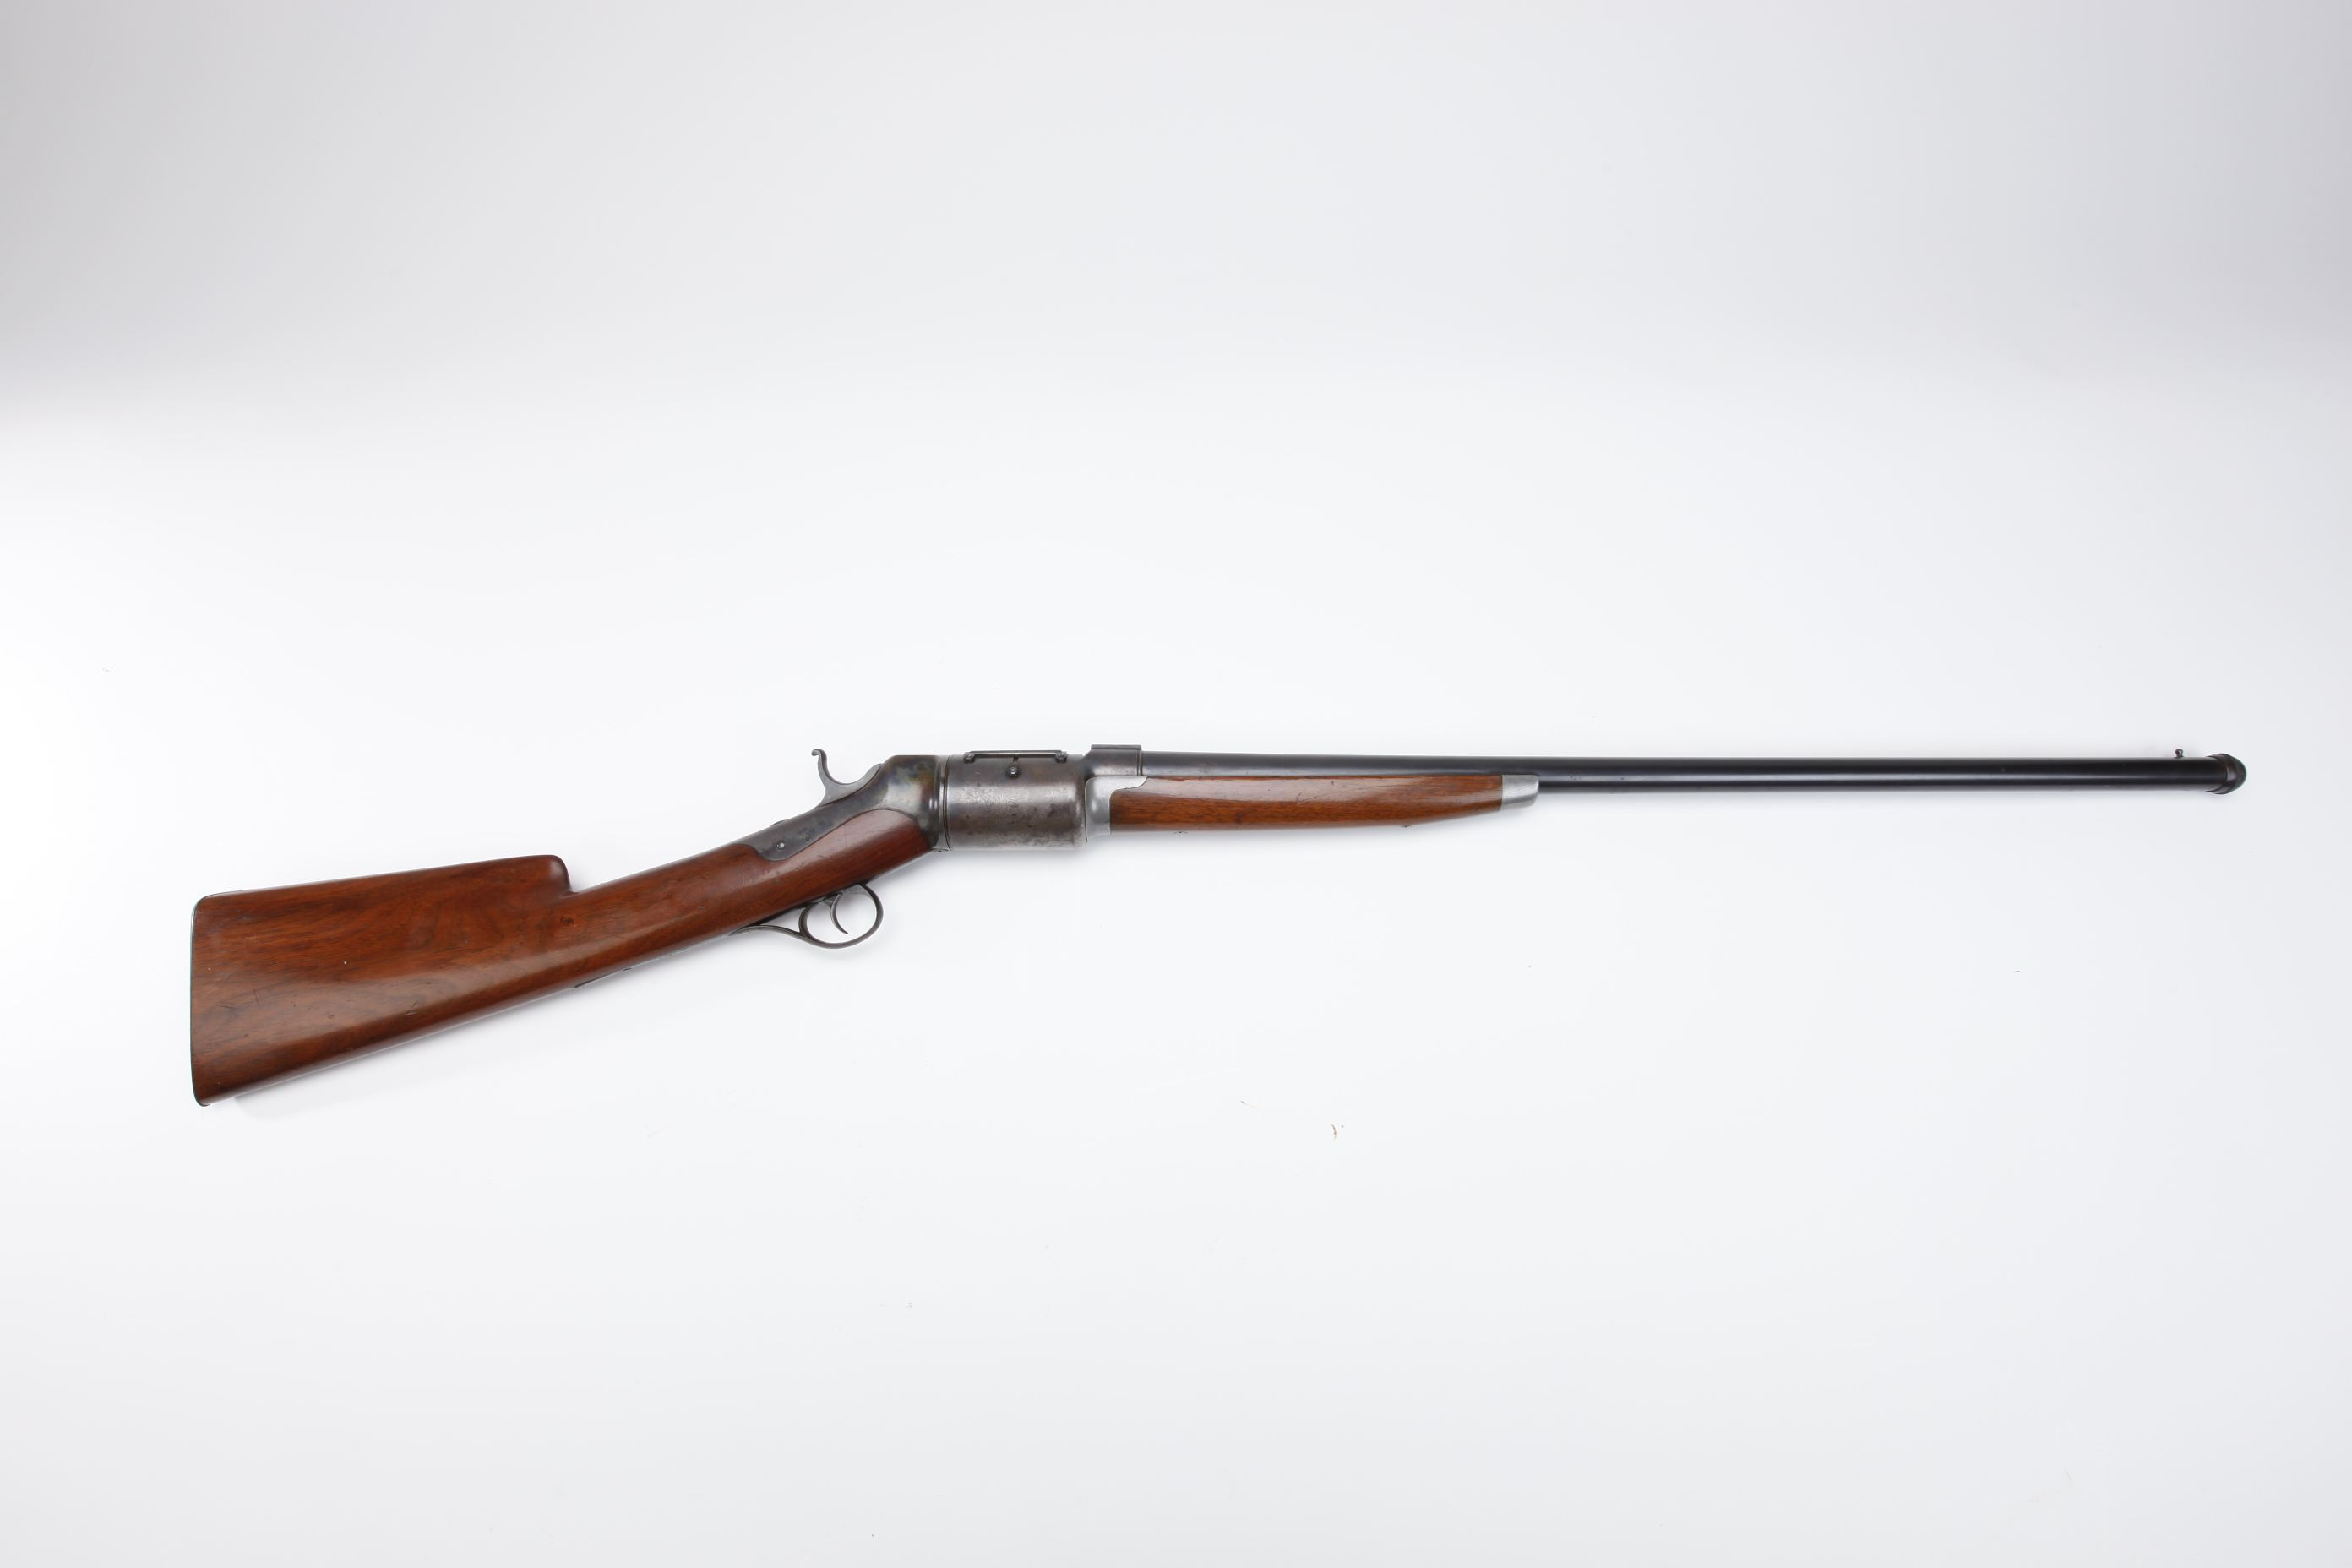 Roper Repeating Shotgun